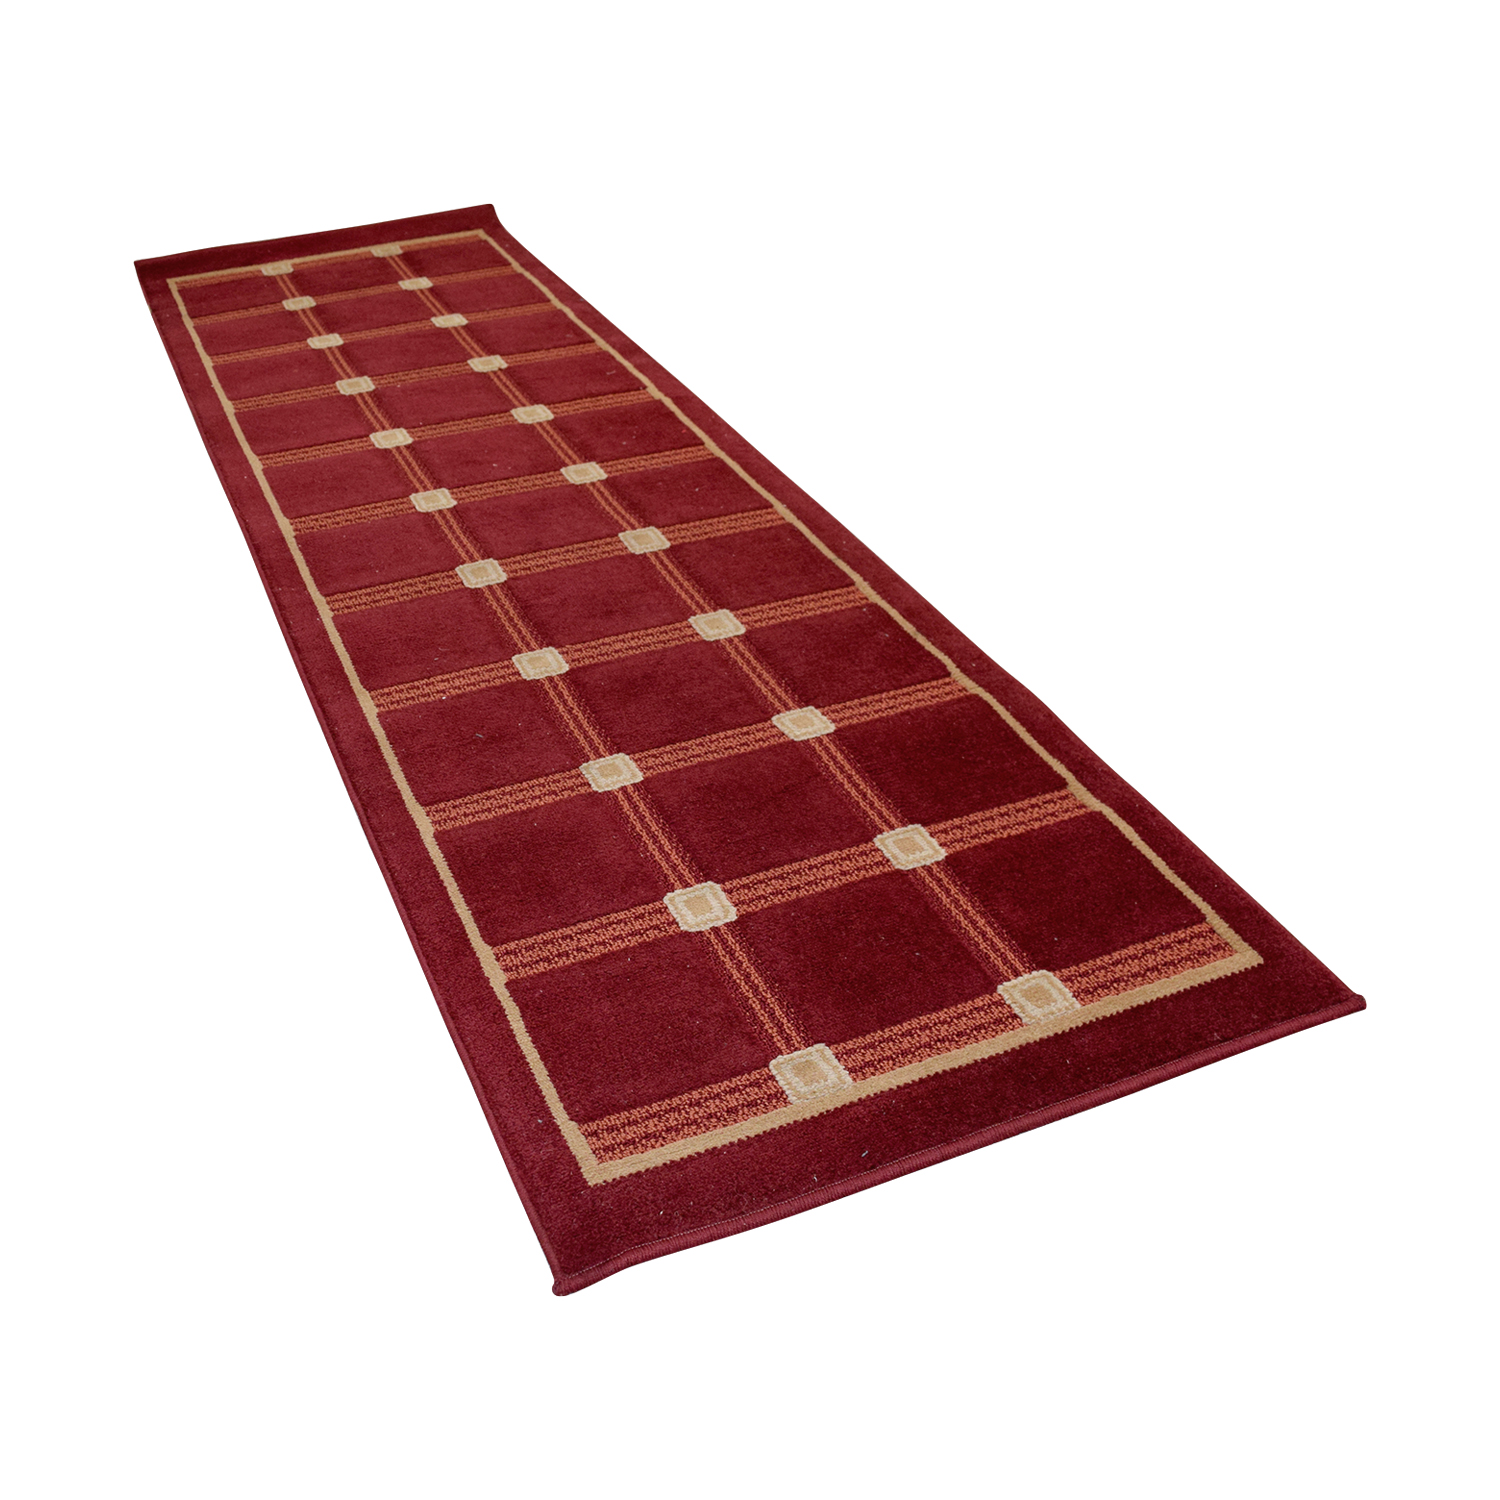 Red and Beige Runner Rug Decor